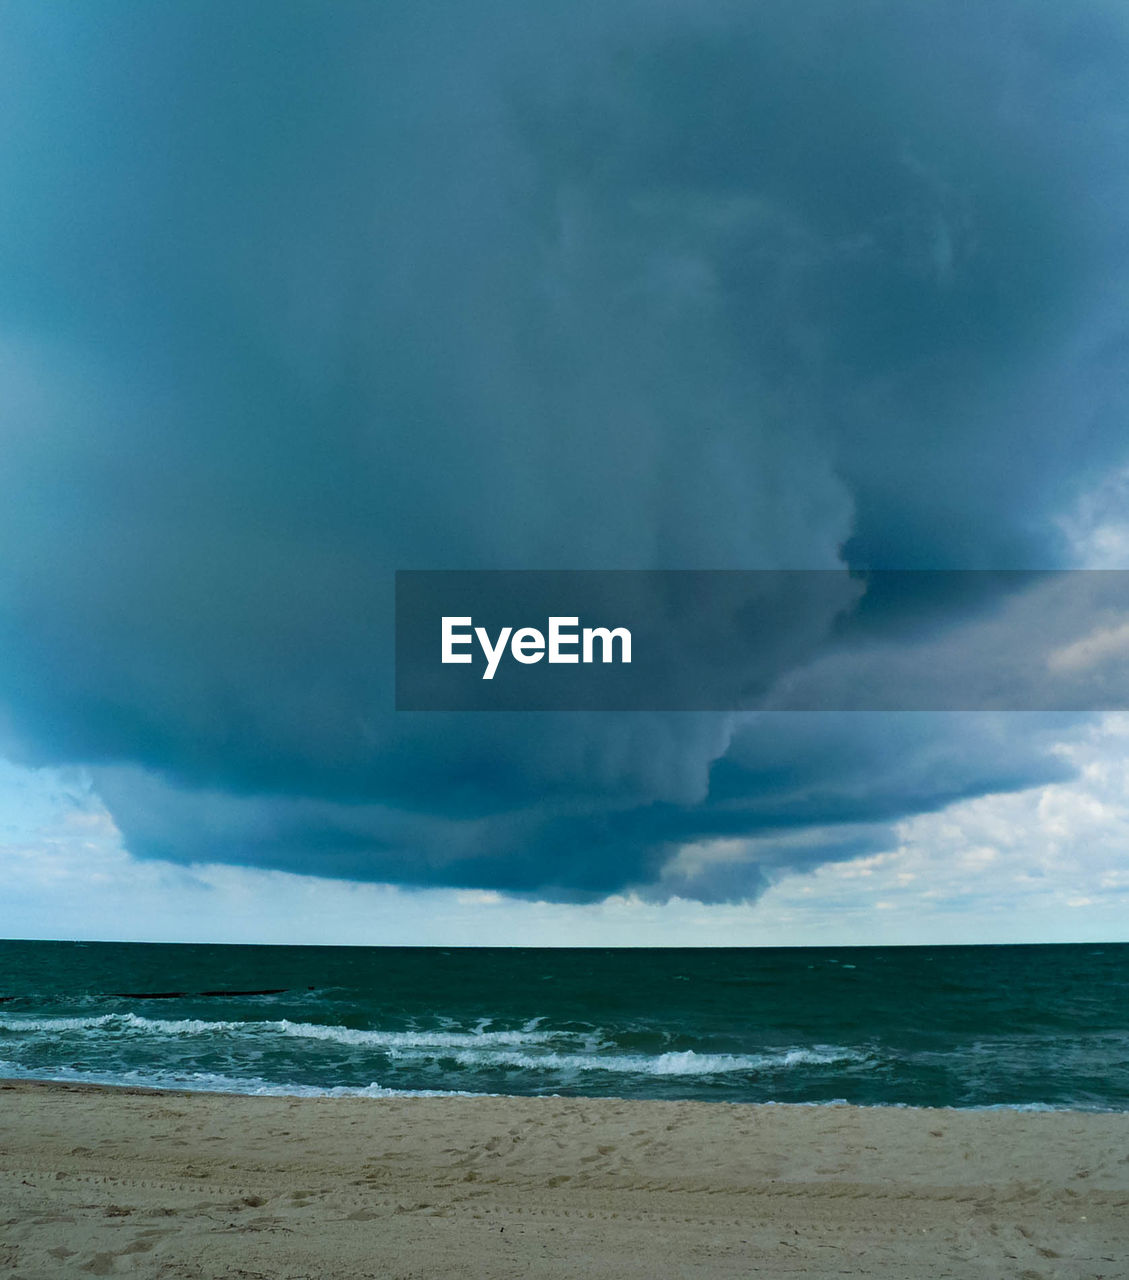 sea, sky, cloud - sky, land, water, beach, horizon, beauty in nature, scenics - nature, horizon over water, storm, motion, nature, wave, day, power in nature, power, tranquility, no people, outdoors, ominous